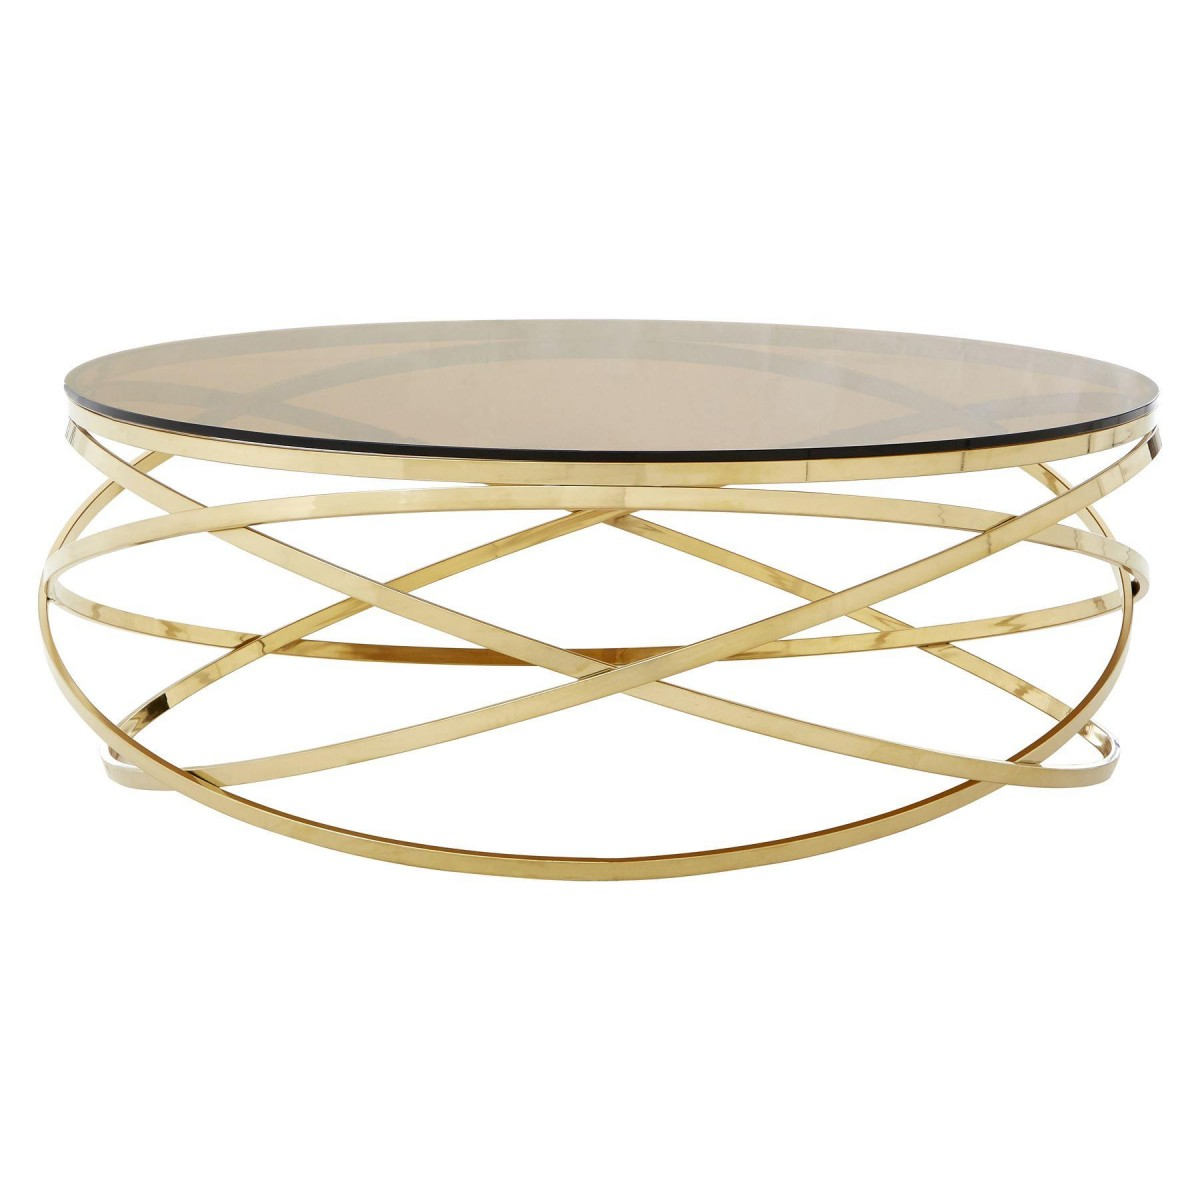 Premium Round Coffee Table Amber Smoked Glass Champagne Gold Base